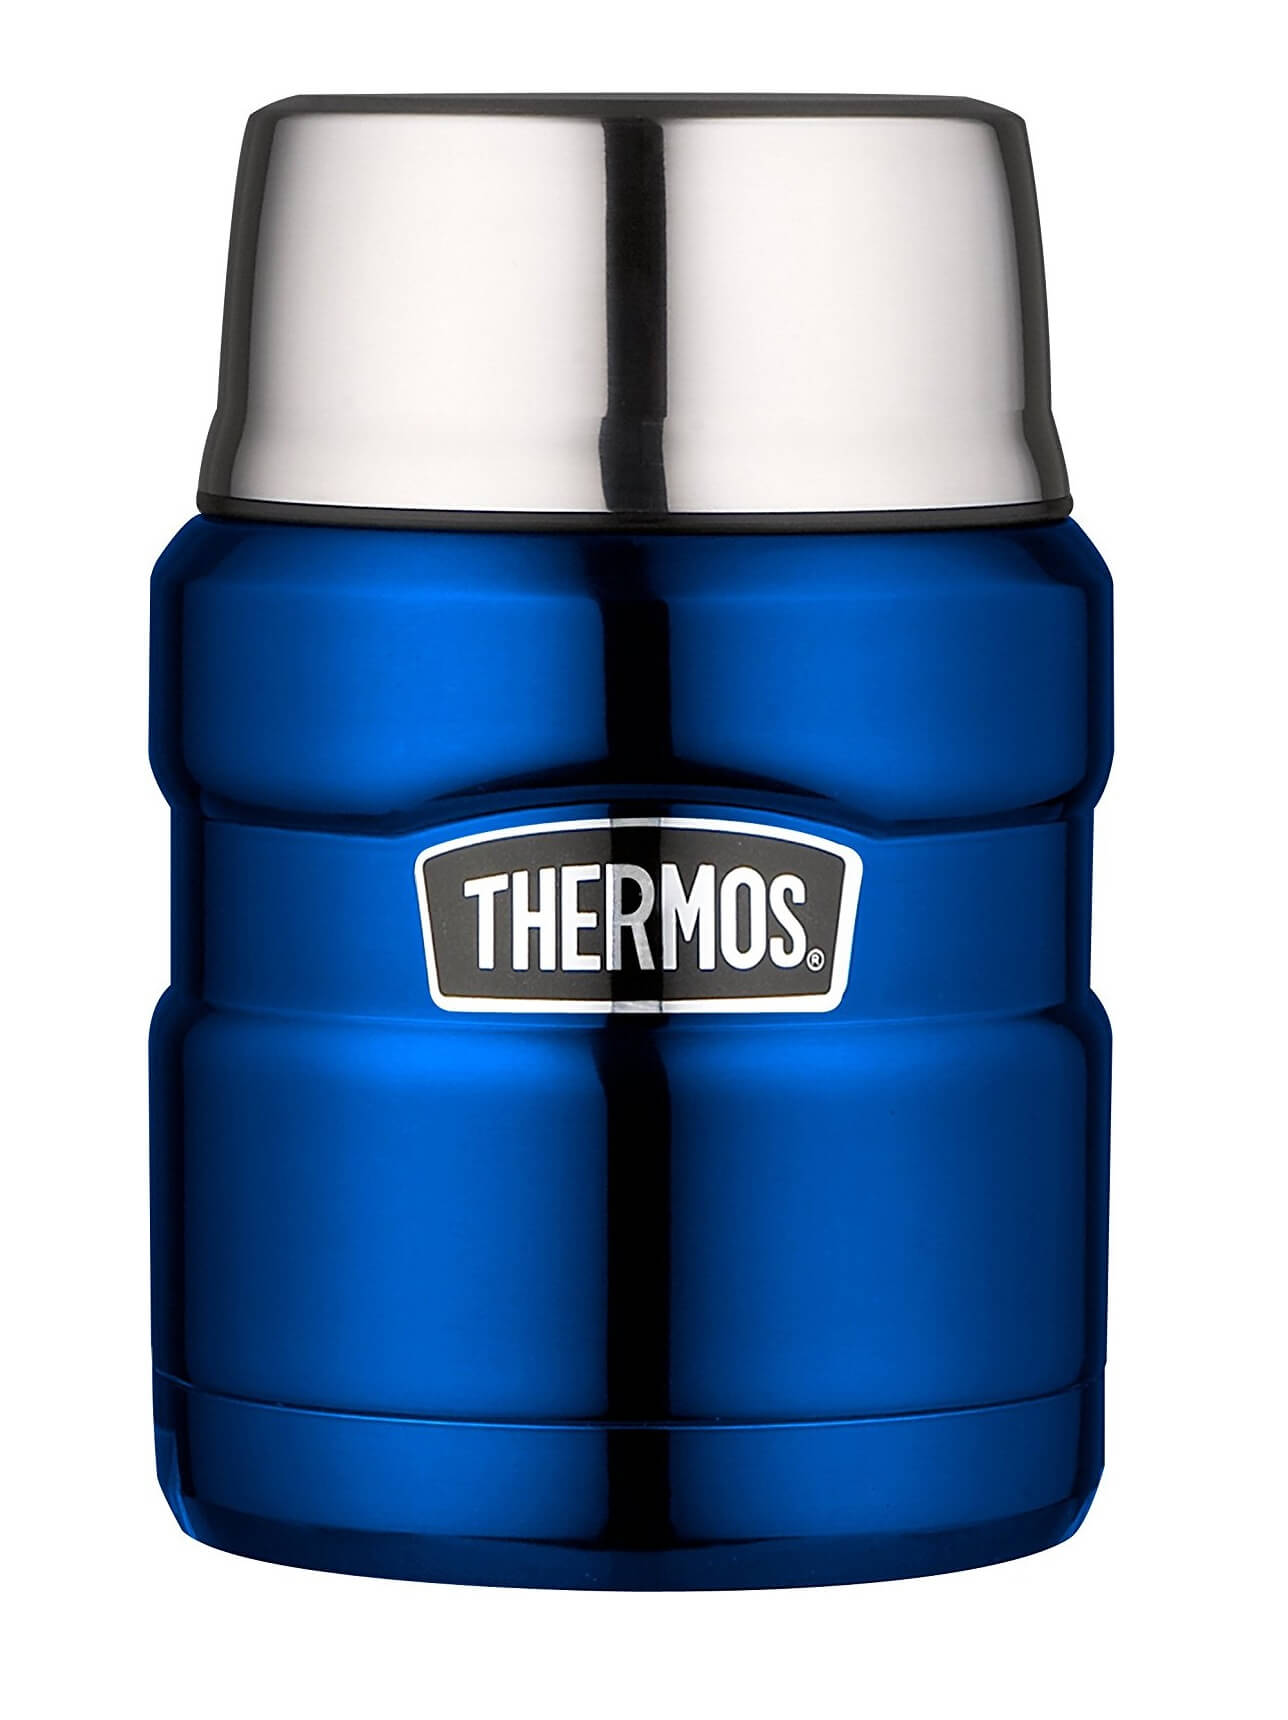 Best Thermos For Coffee And Soup